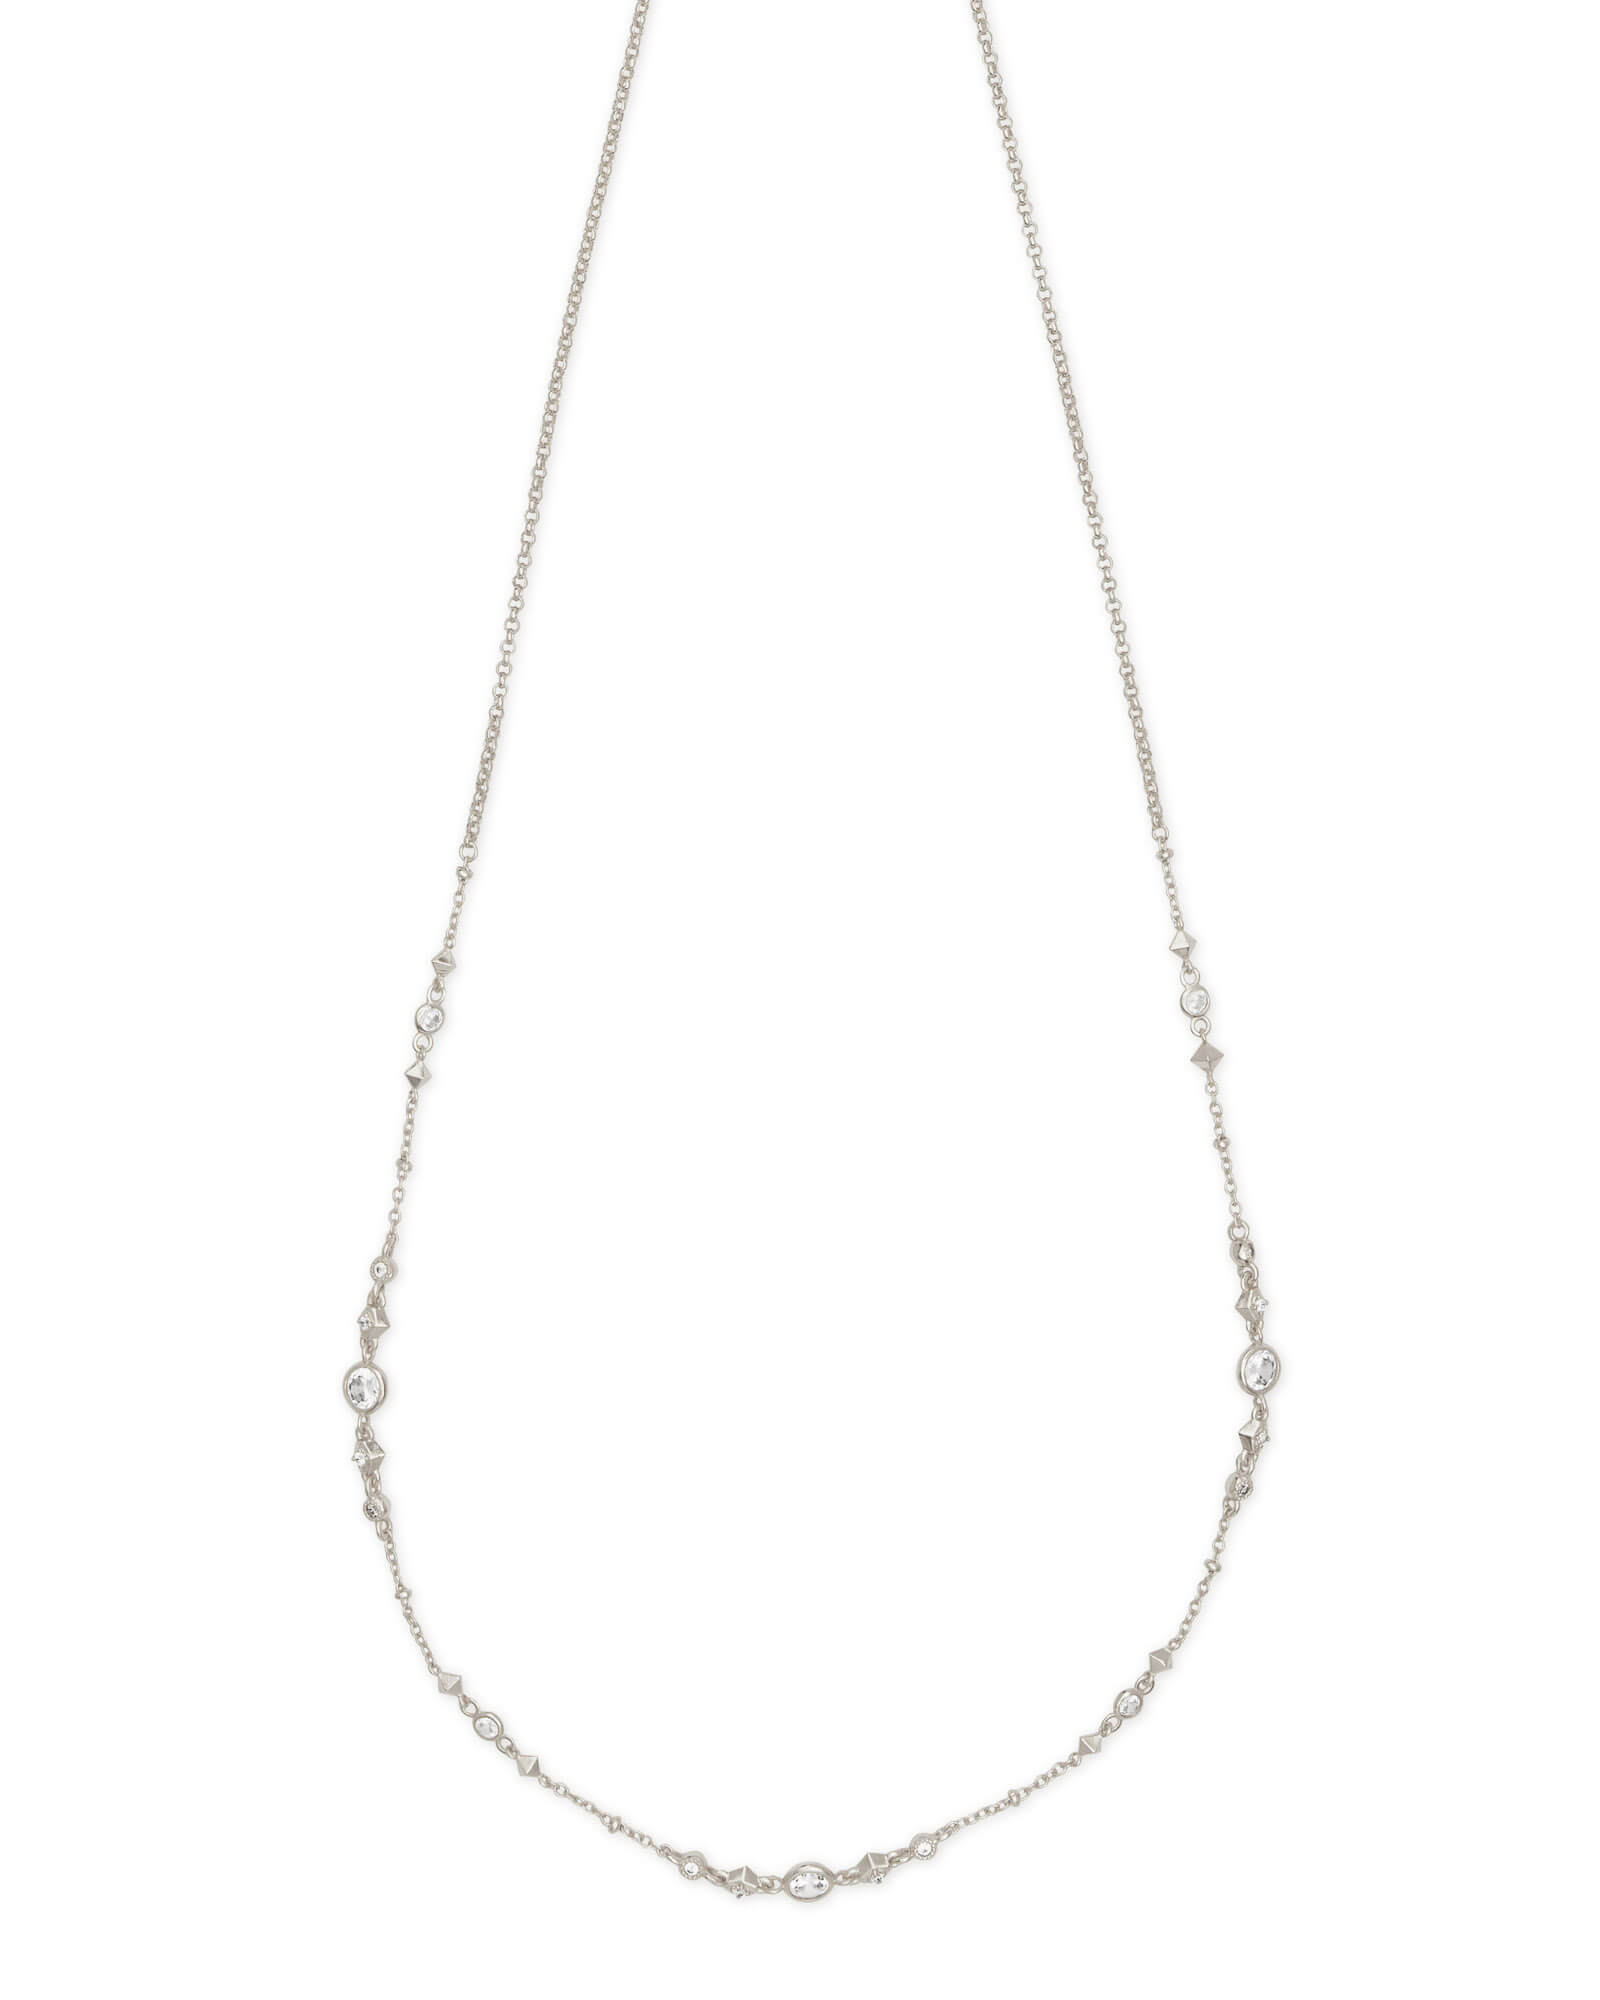 Winifred Y Necklace In Silver by Kendra Scott